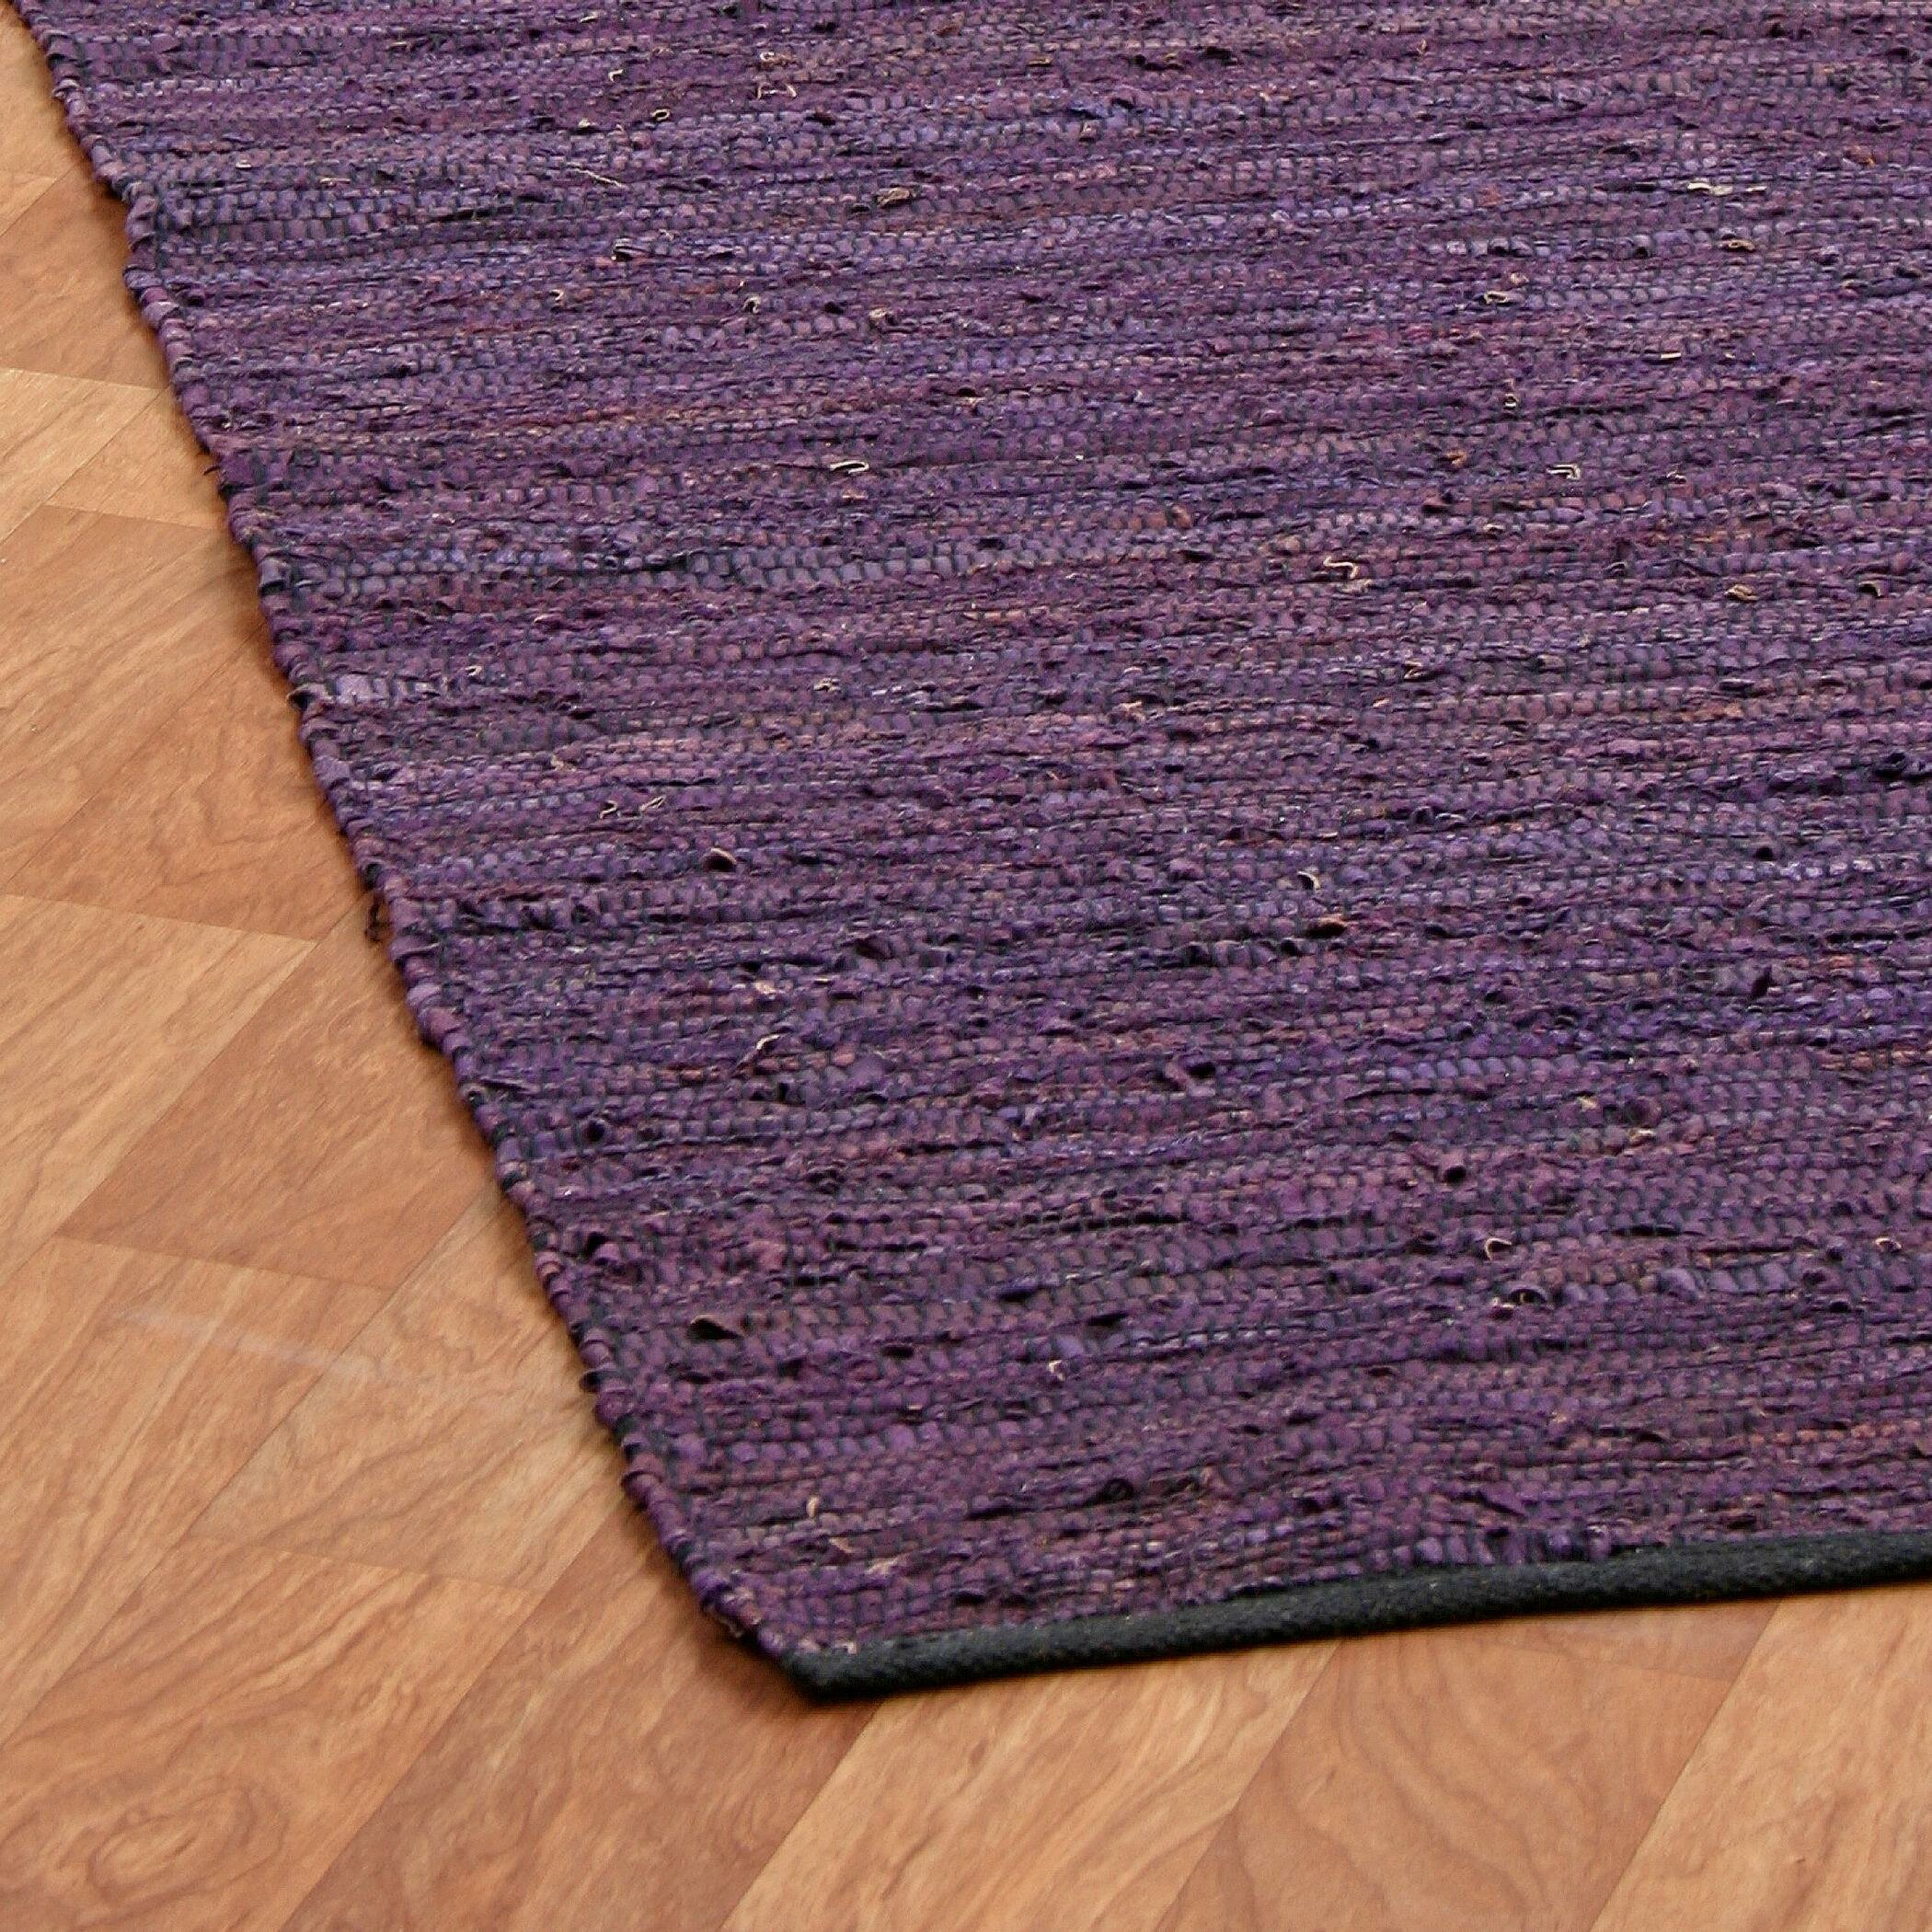 Xl Purple Rug: St. Croix Matador Leather Chindi Purple Rug & Reviews